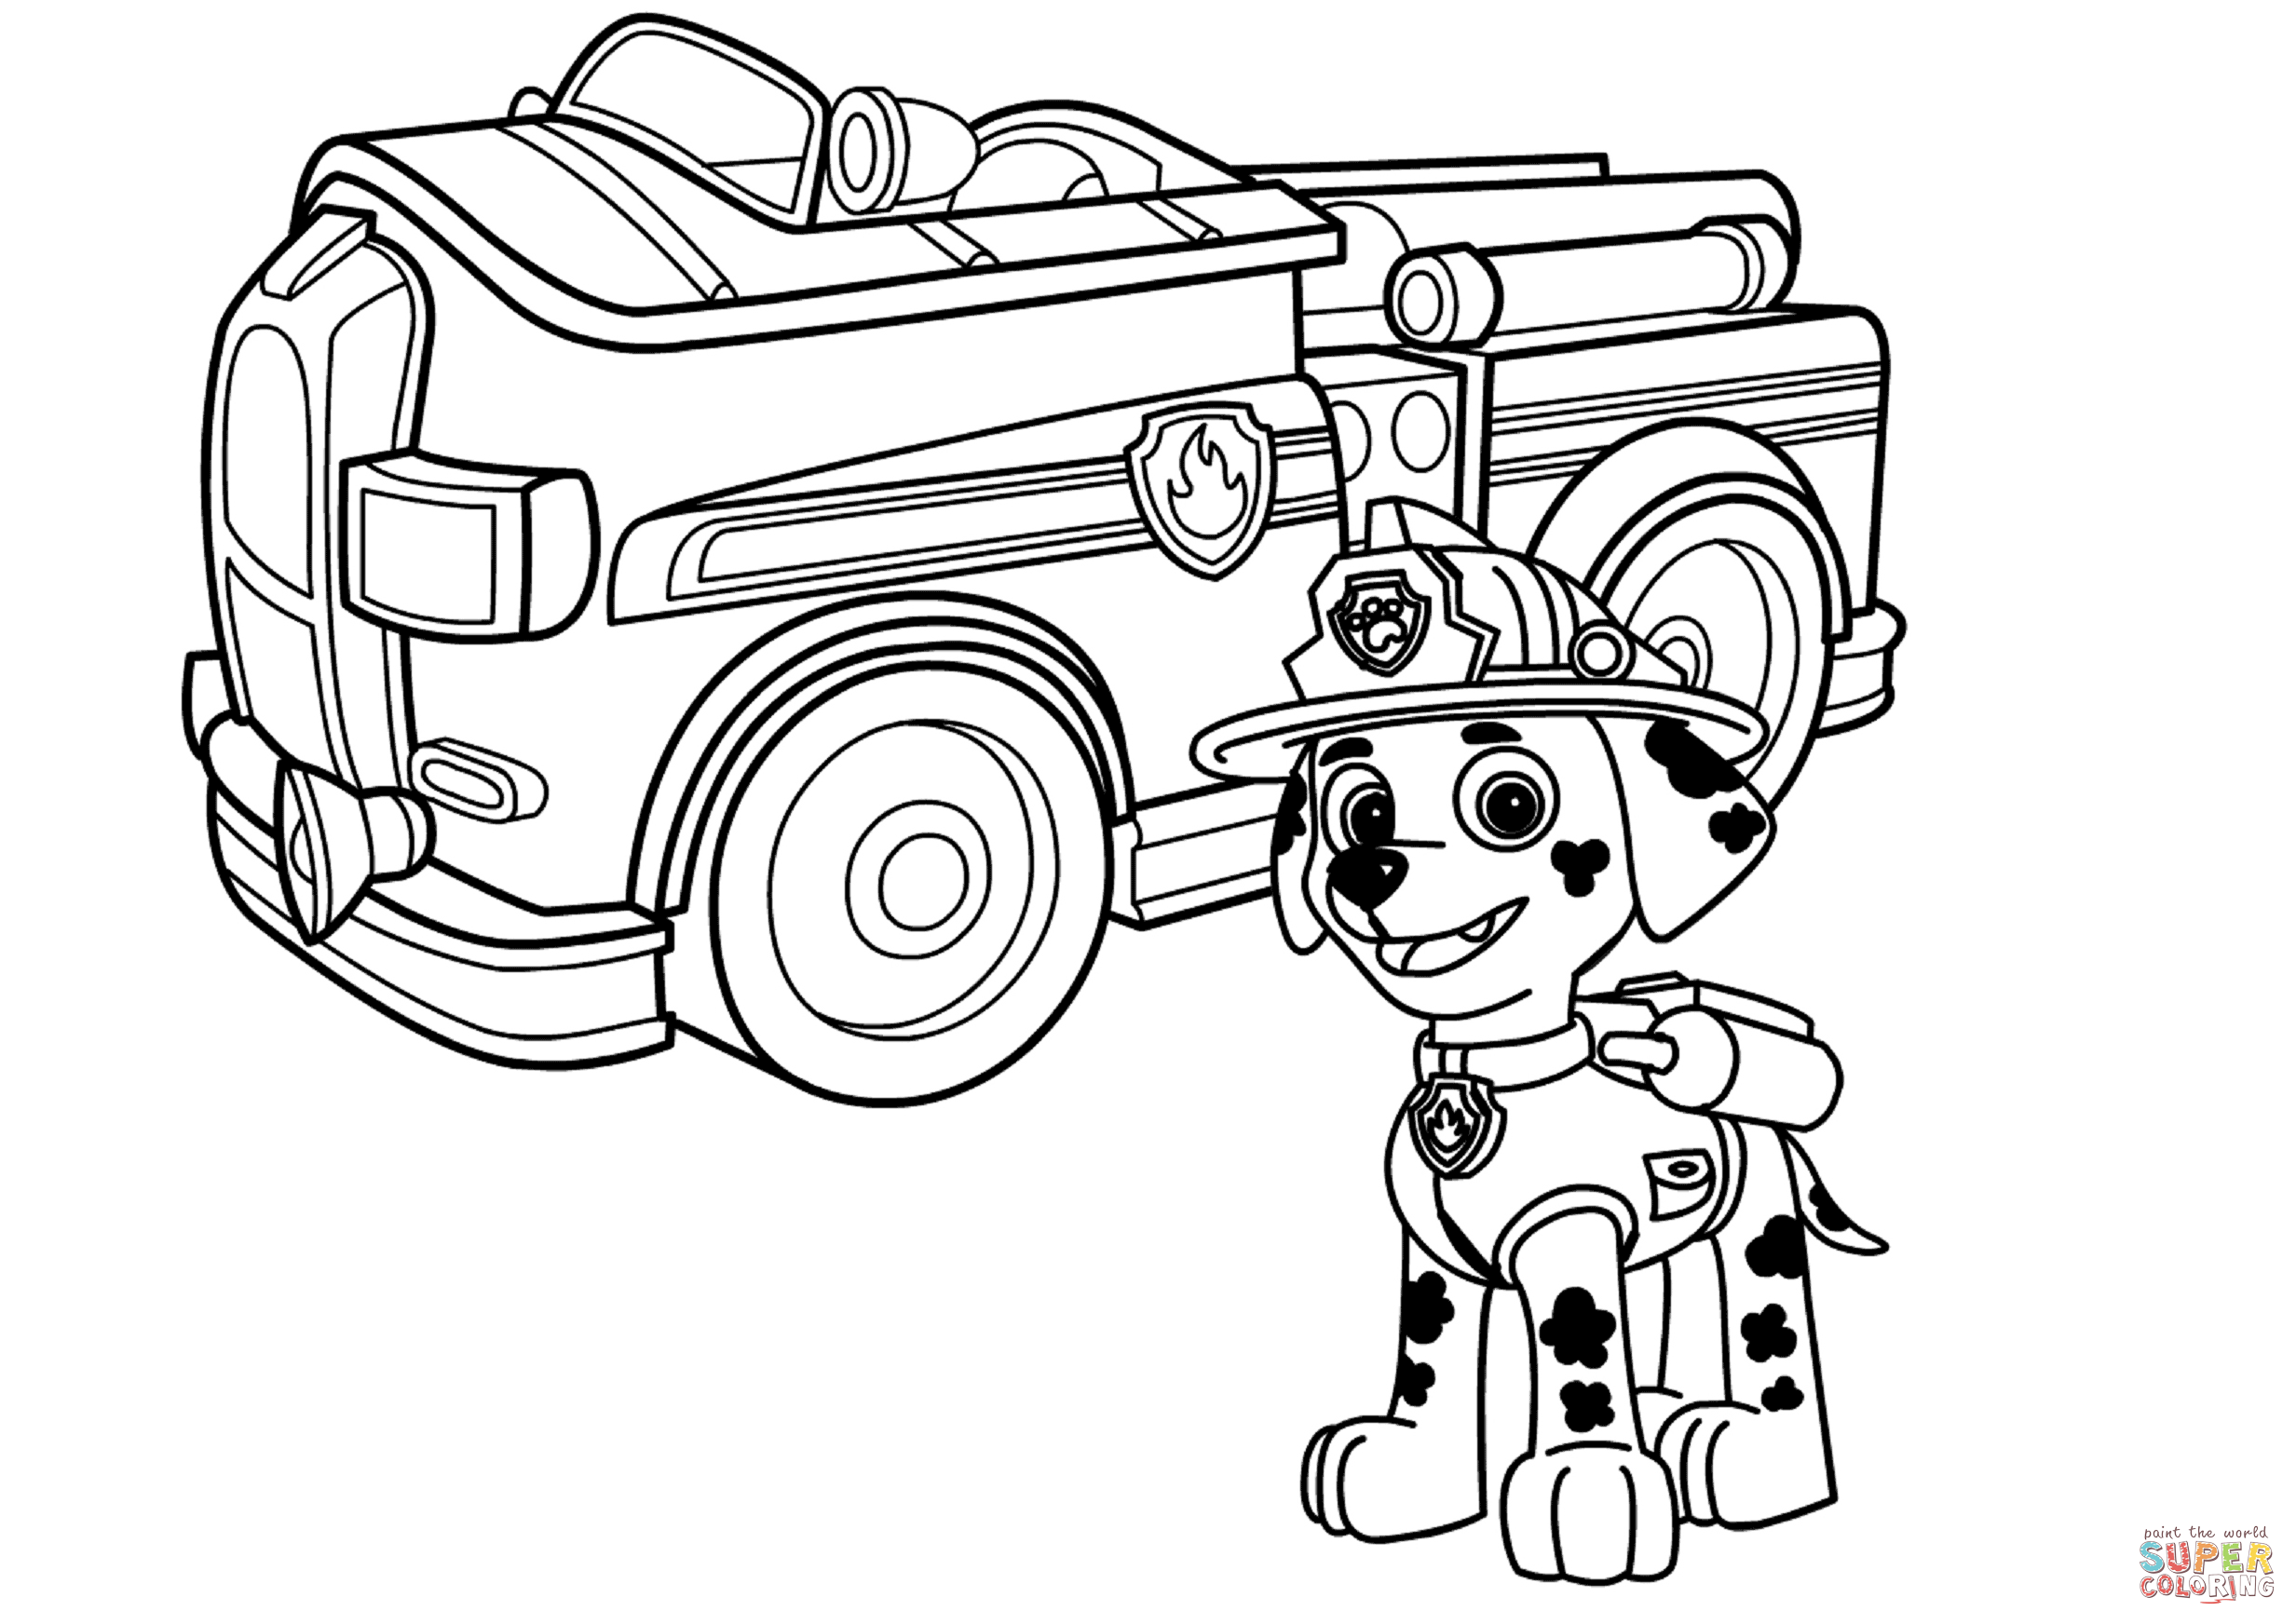 Auto Ausmalbilder Cars : Cars And Trucks Drawing At Getdrawings Com Free For Personal Use